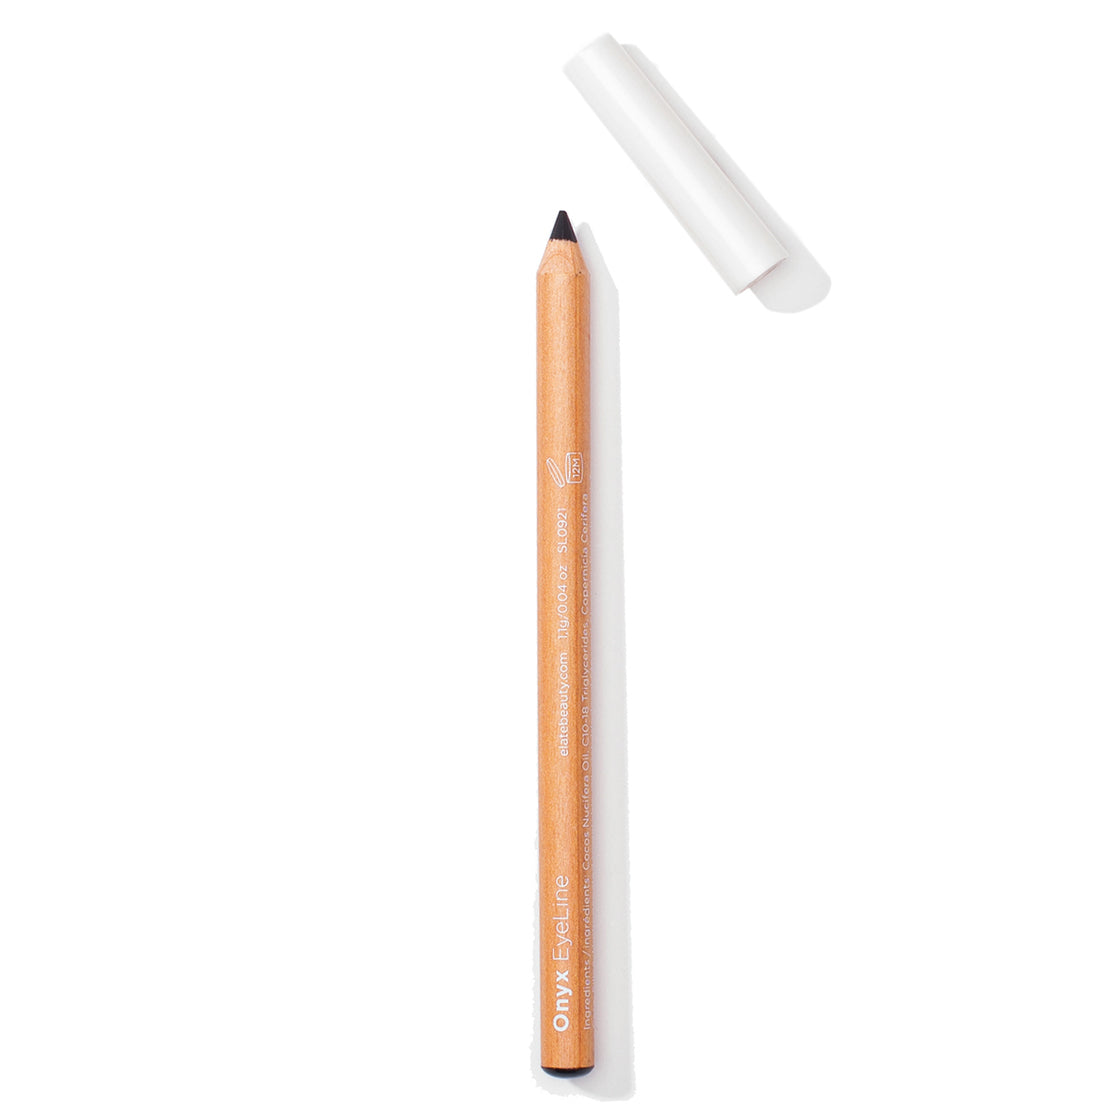 Elate Cosmetics, a low-waste and sustainable eye pencils for clean beauty vegan lifestyle. Natural black matte finish. Recycled Wood and biodegradable lid